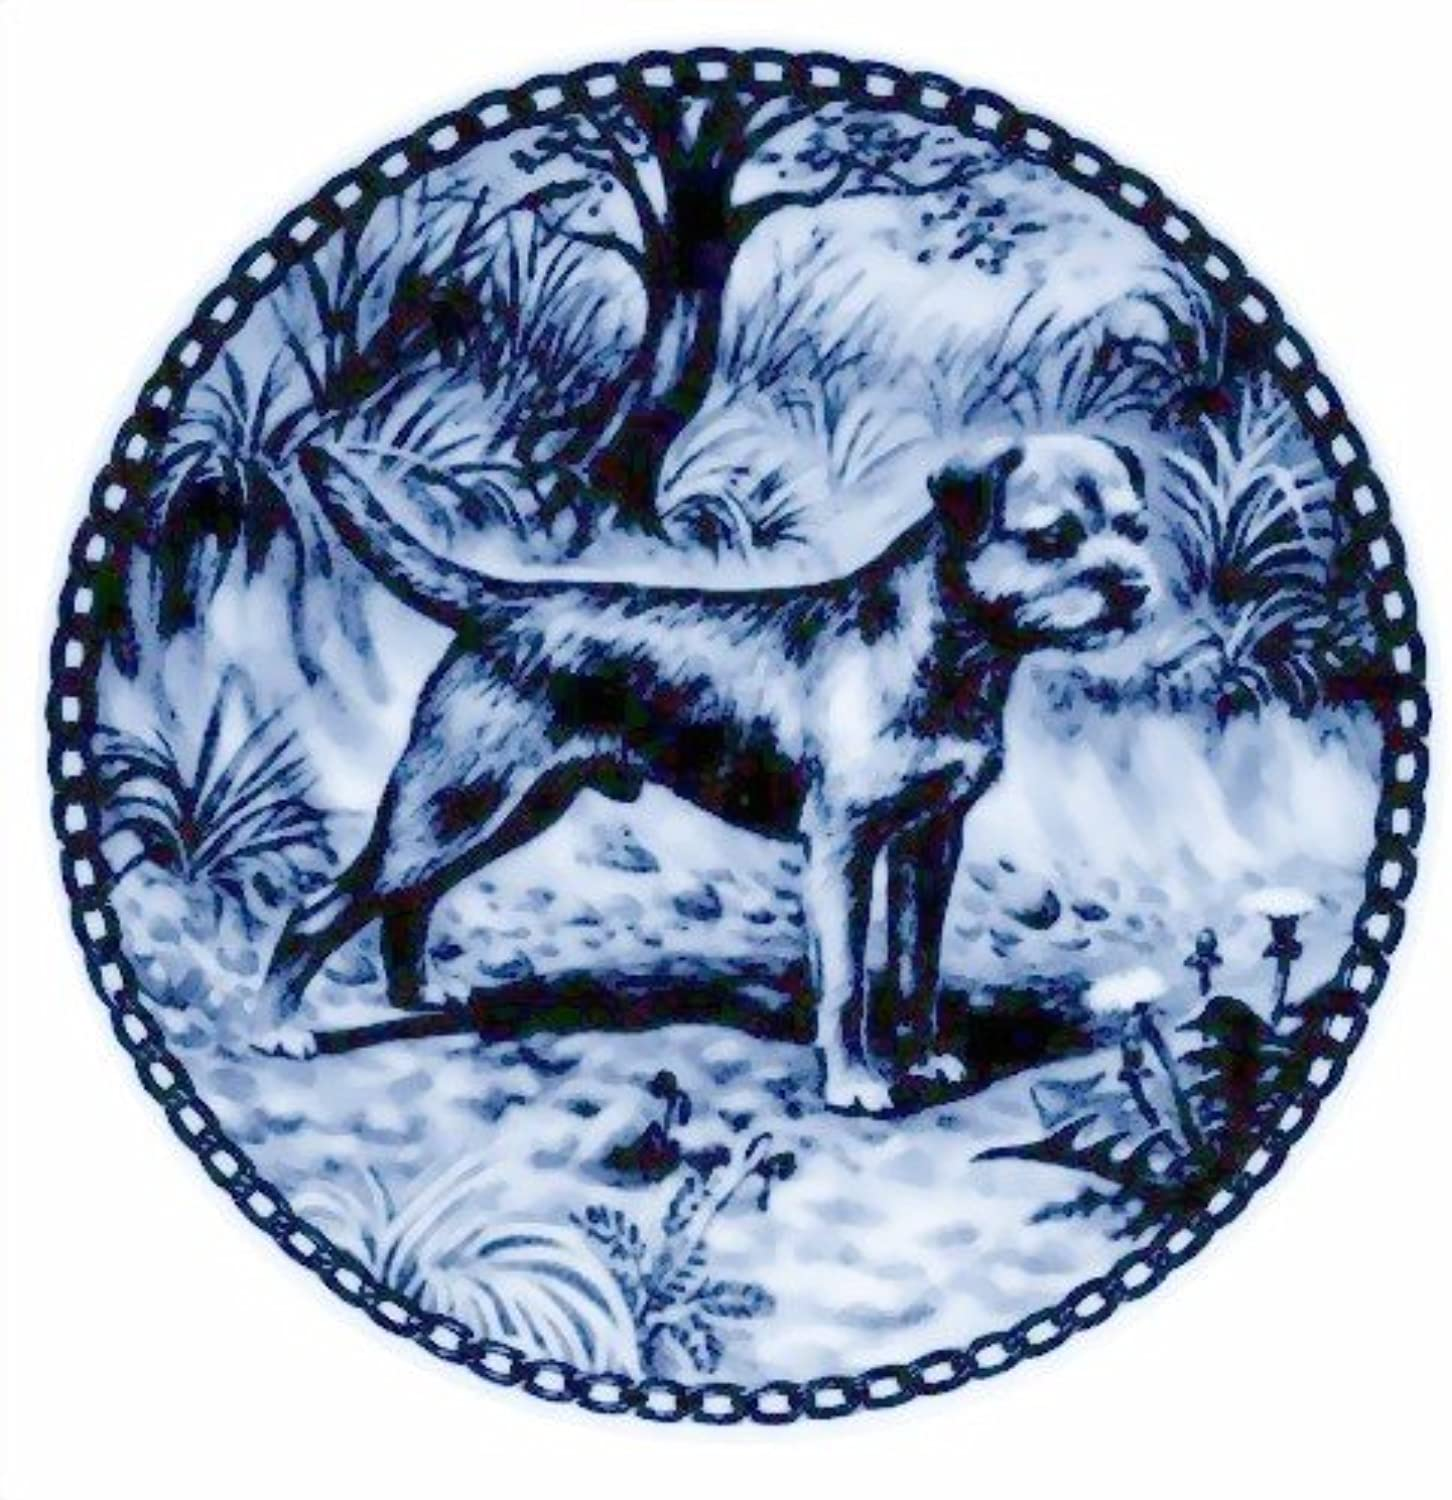 Border Terrier   Lekven Design Dog Plate 19.5 cm  7.61 inches Made in Denmark NEW with certificate of origin PLATE  7139